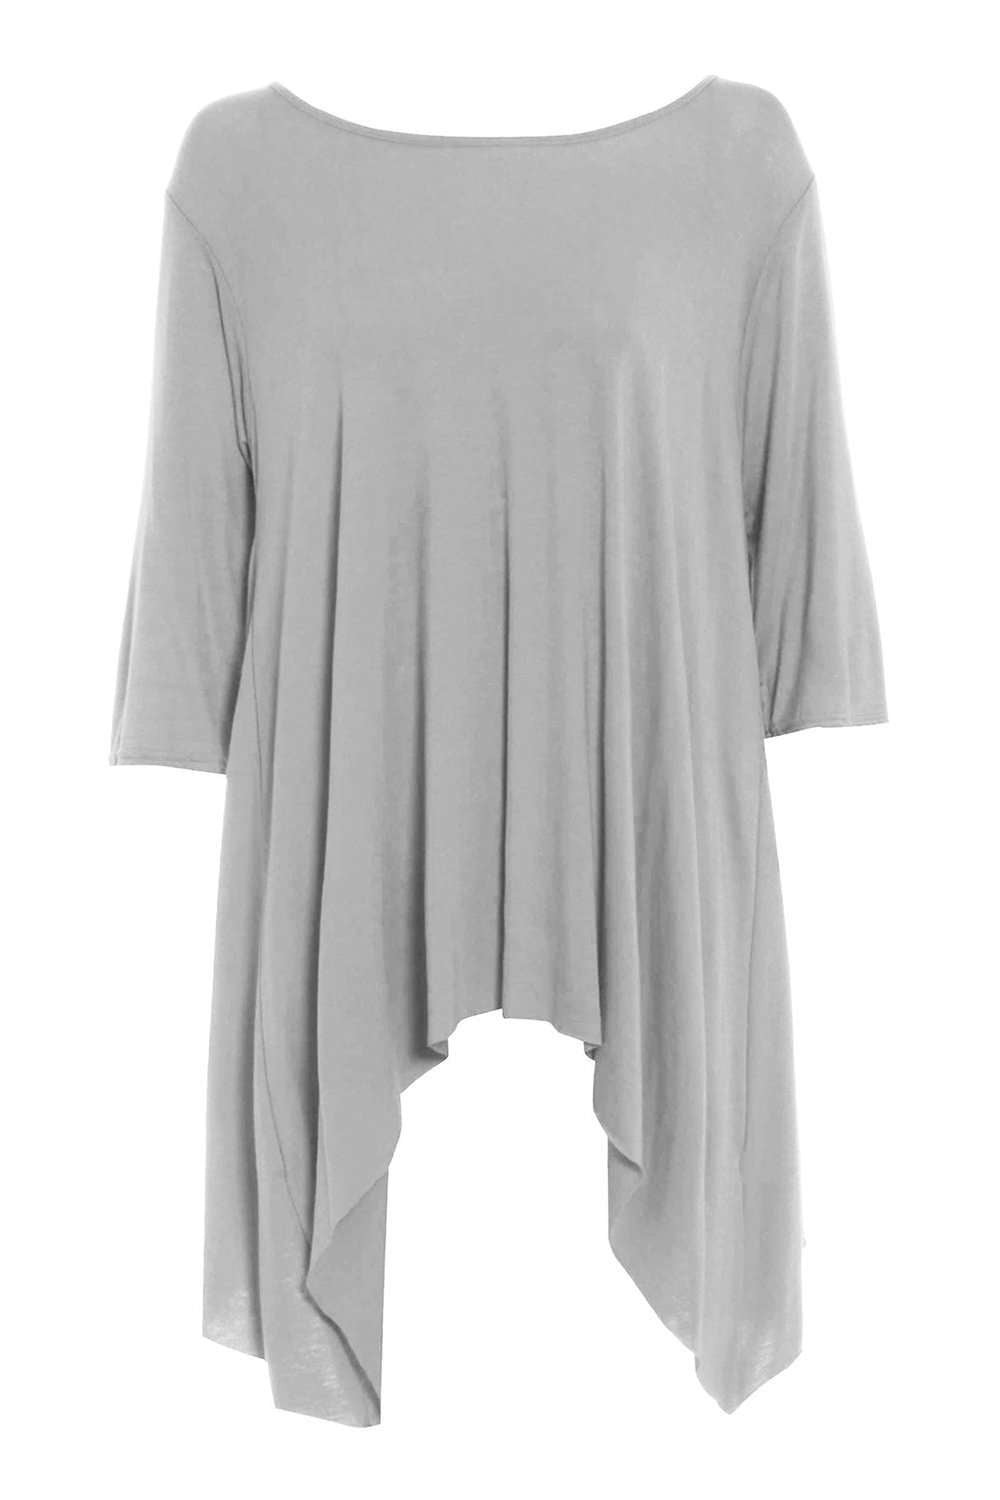 Carly Long Sleeve Dipped Hem Baggy Top - bejealous-com